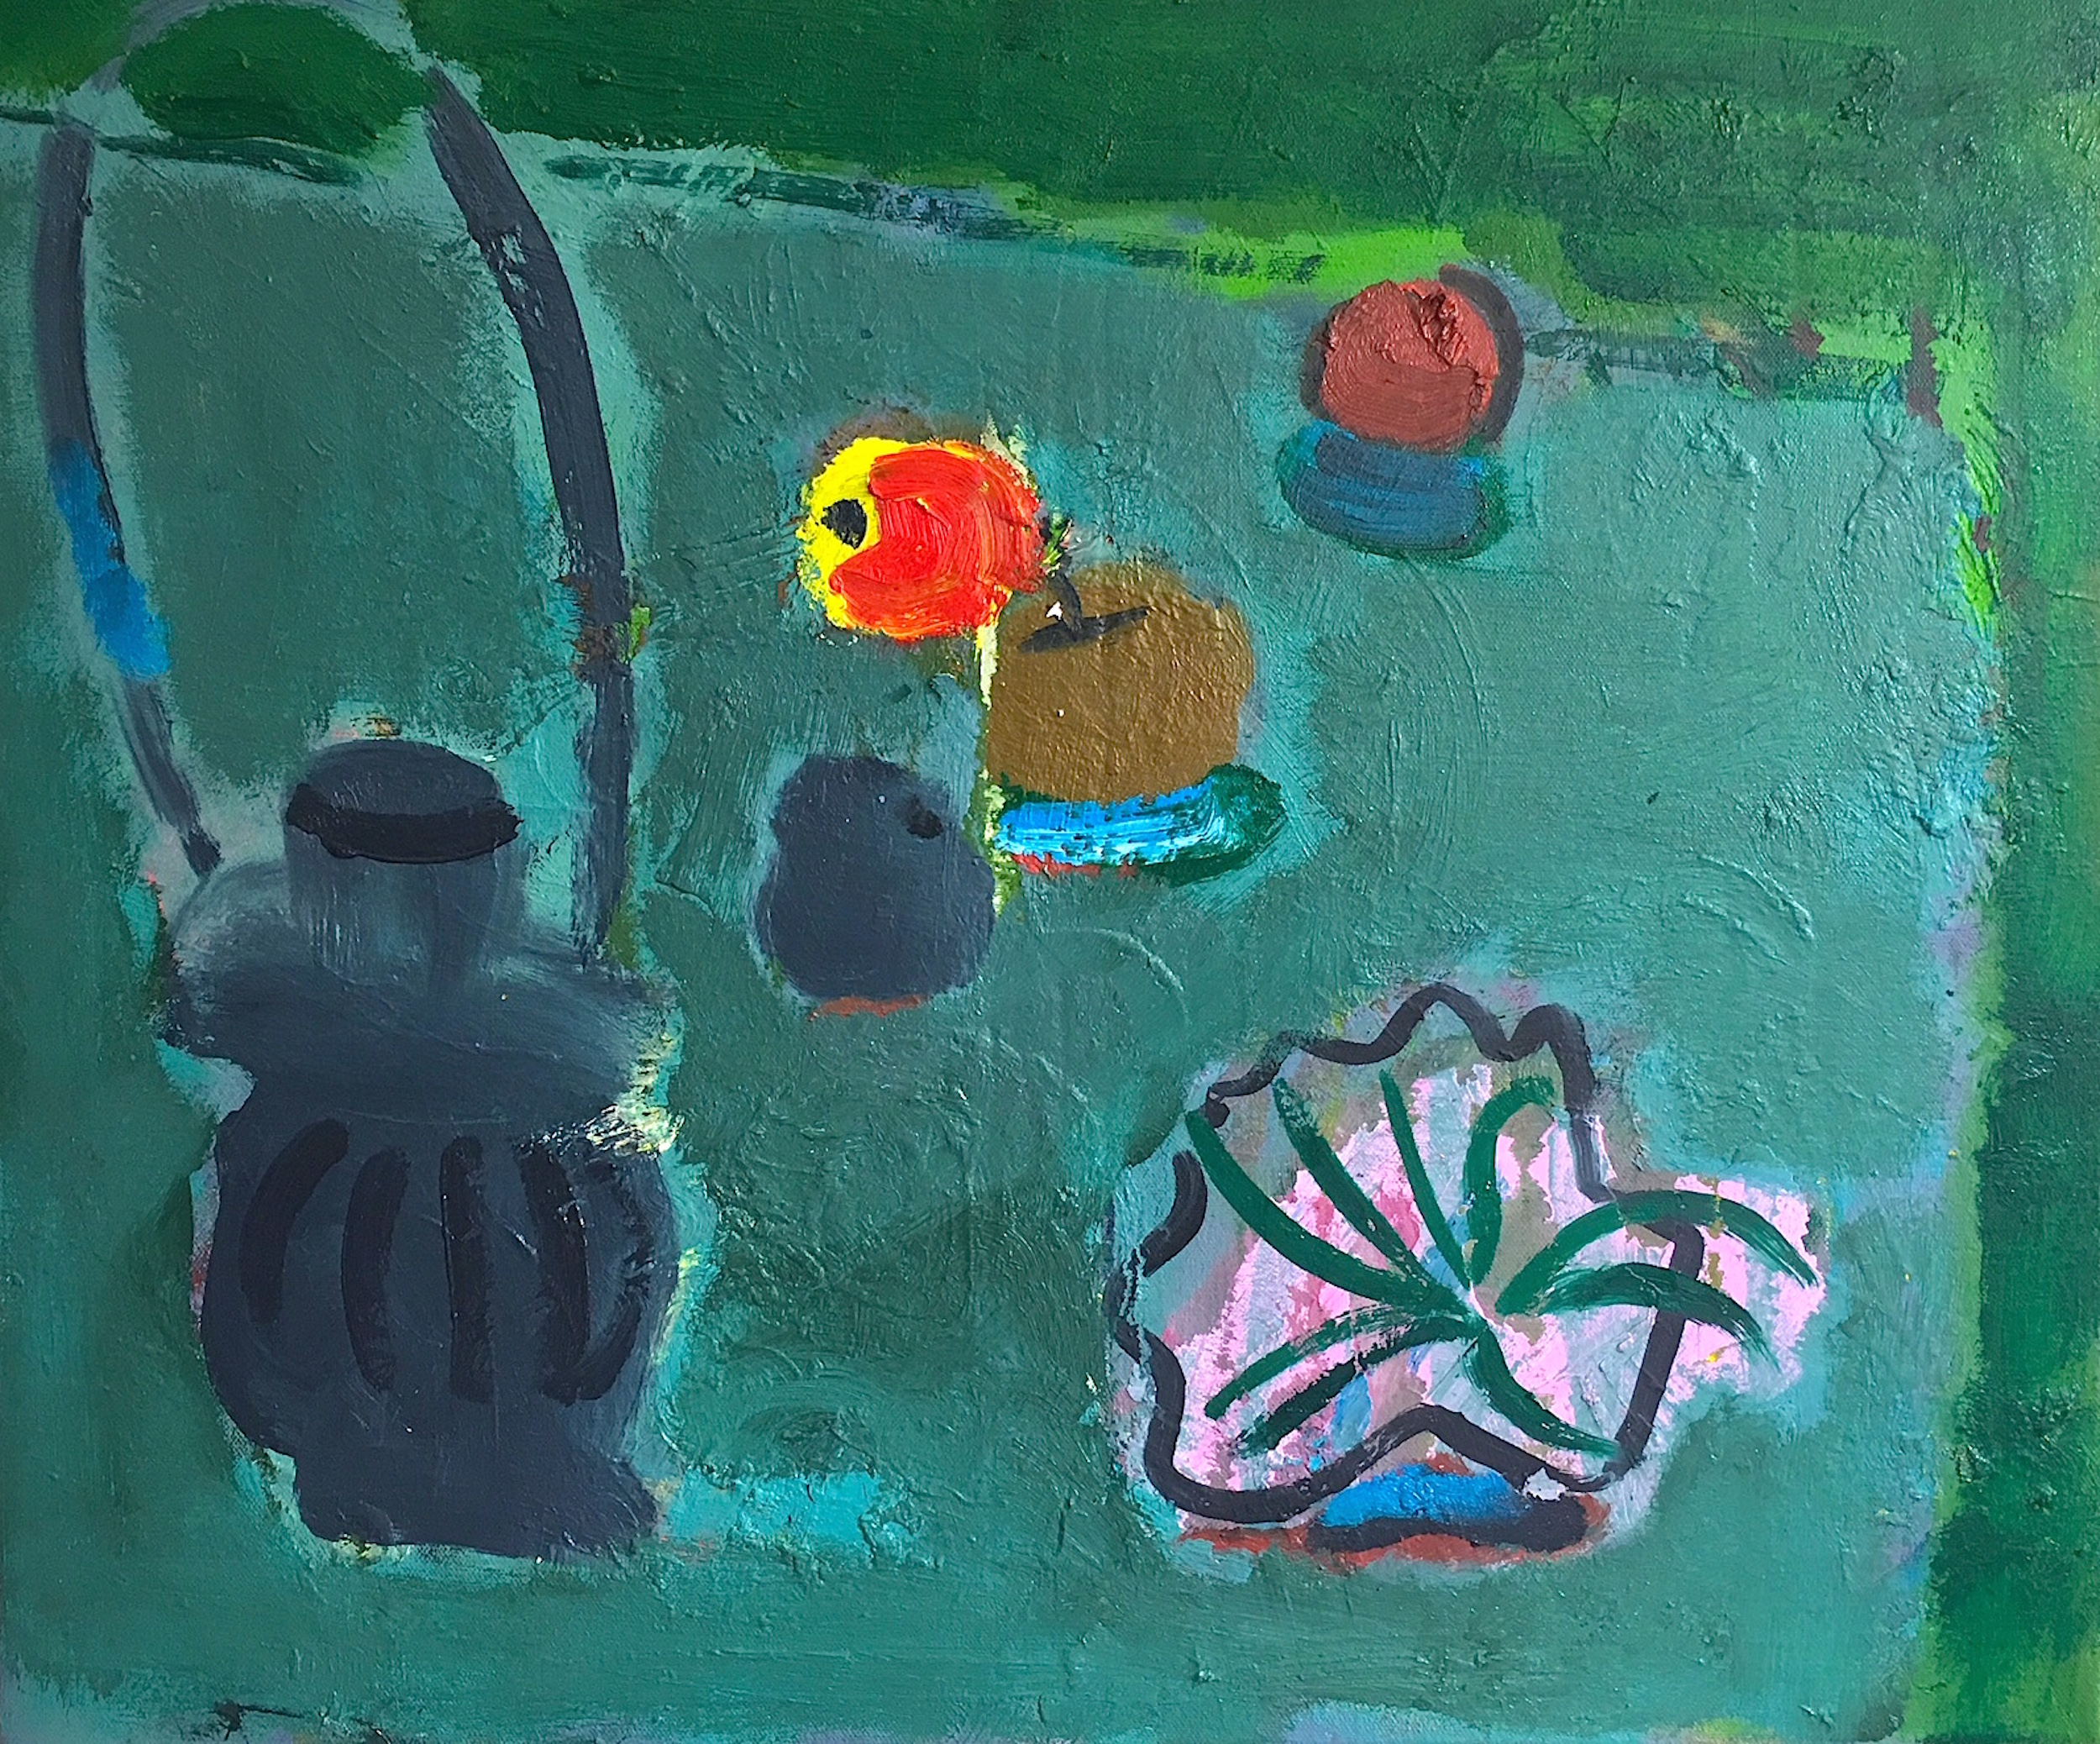 Title: Still Life with Yellow Apple  Size: 56 x 61 cm  Medium: Oil on canvas  Price: £1550